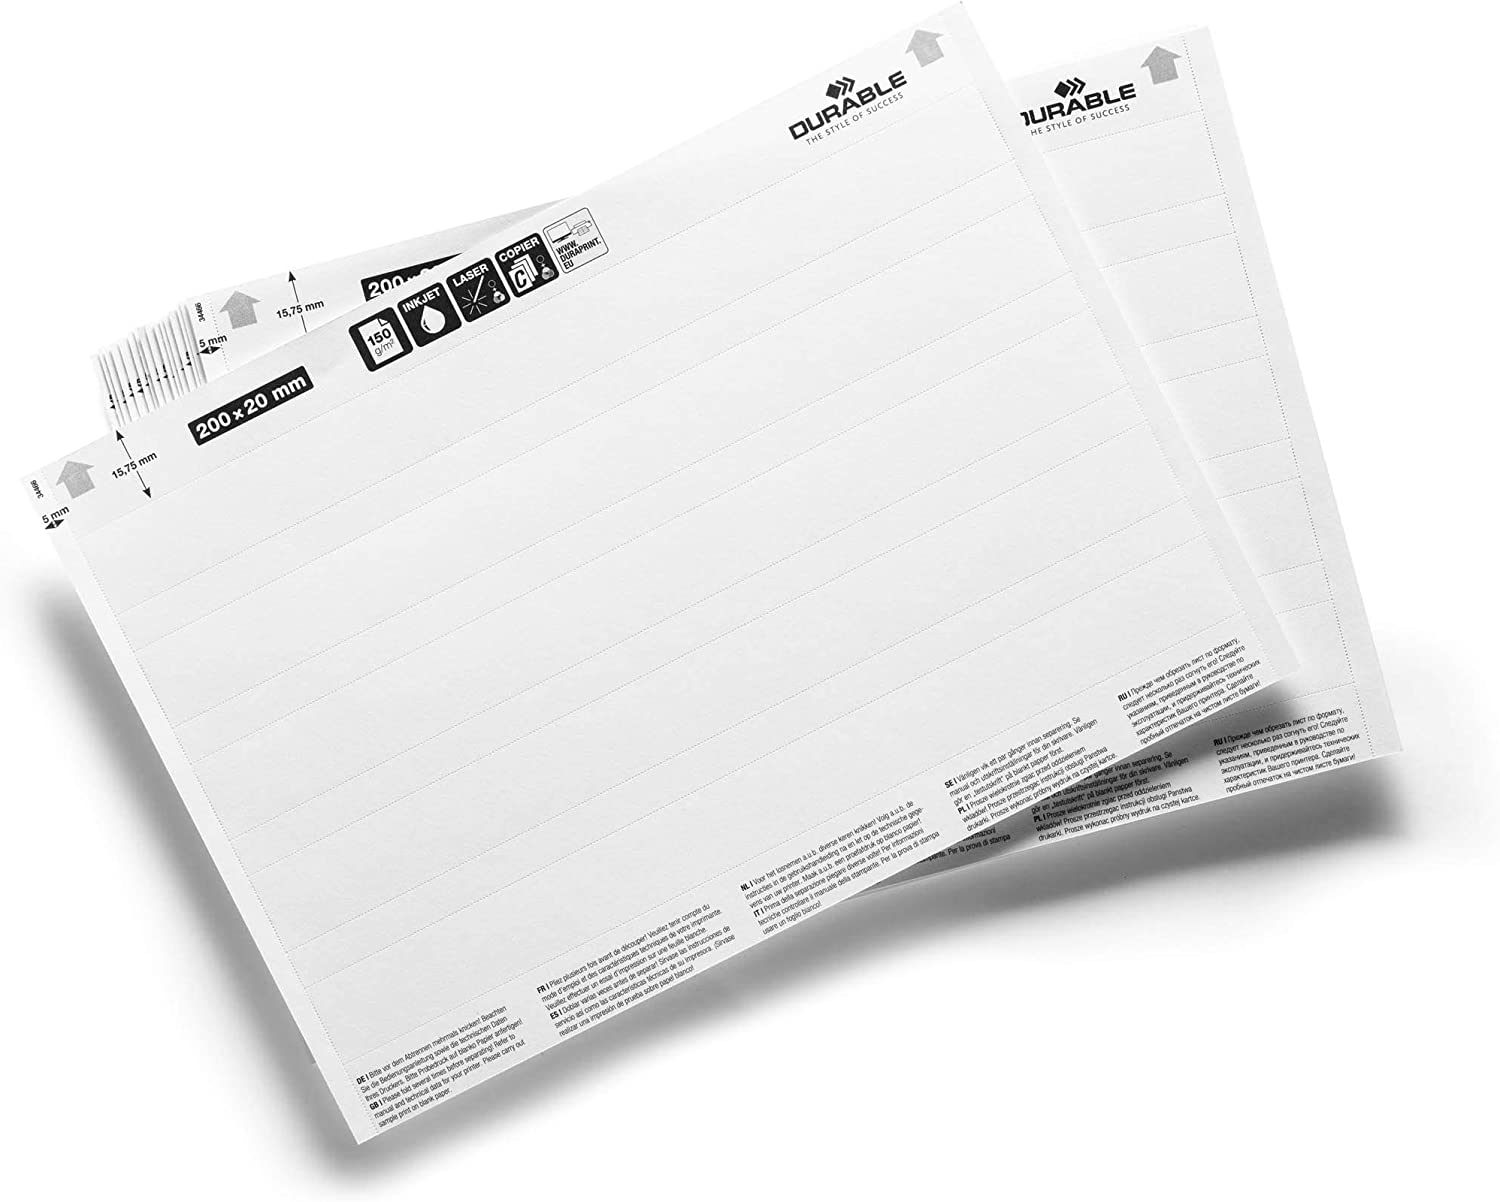 Amazon.com : Durable 800002 Label Refill Inserts 100 Labels ...